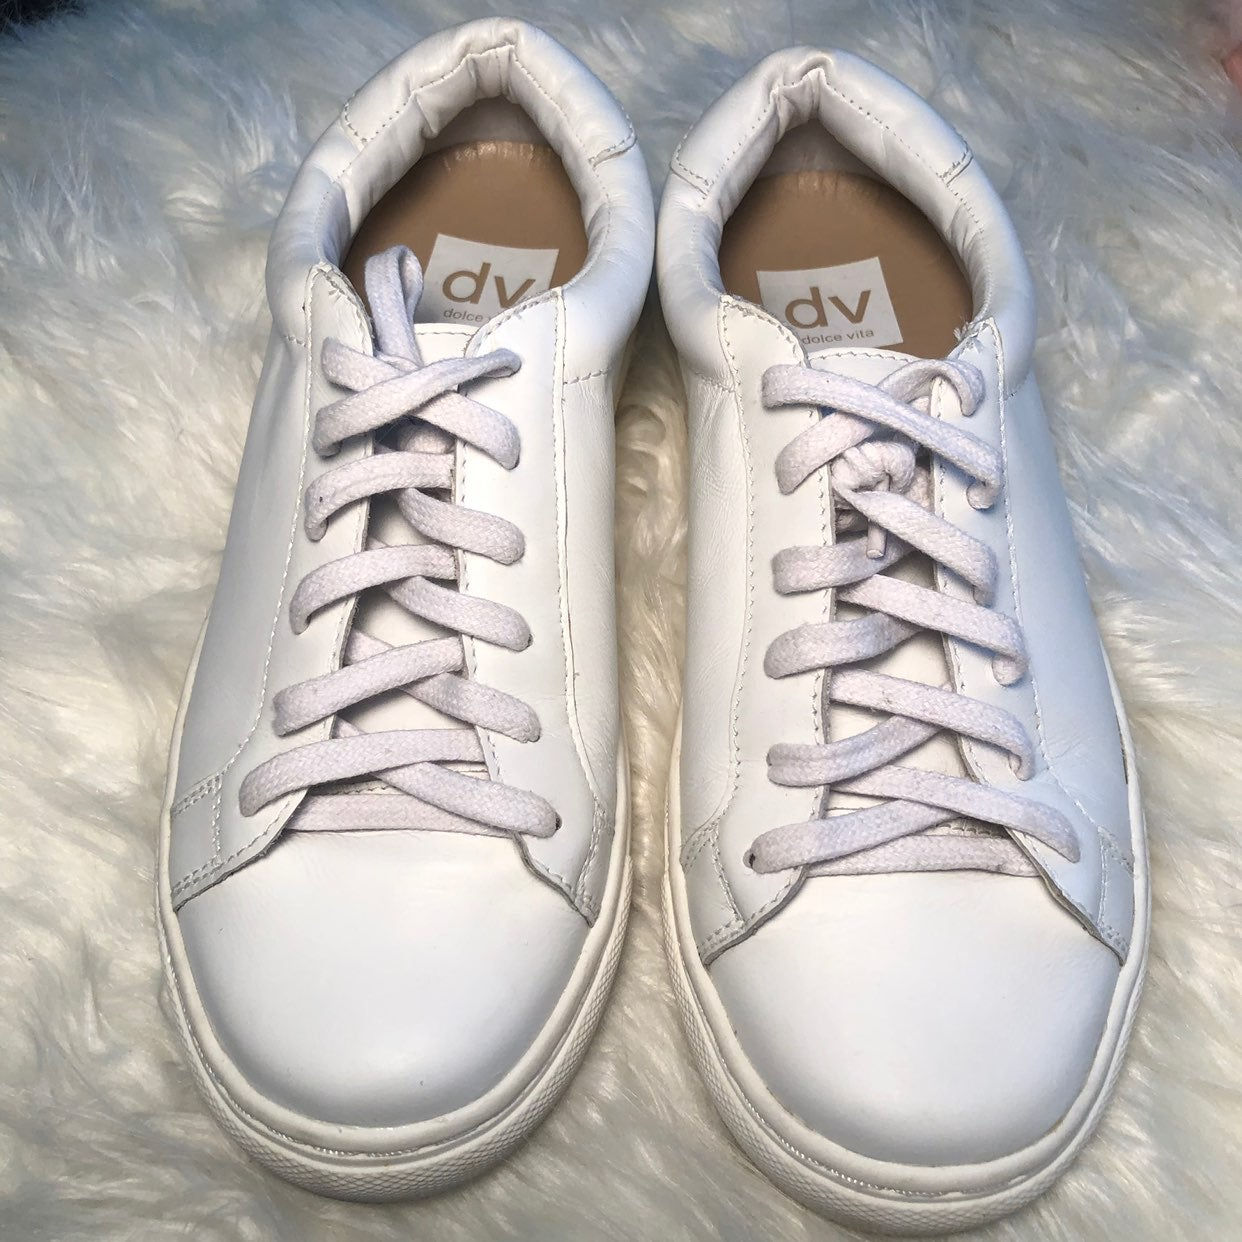 Dolce Vita Fashion Sneakers by Dolce Vita